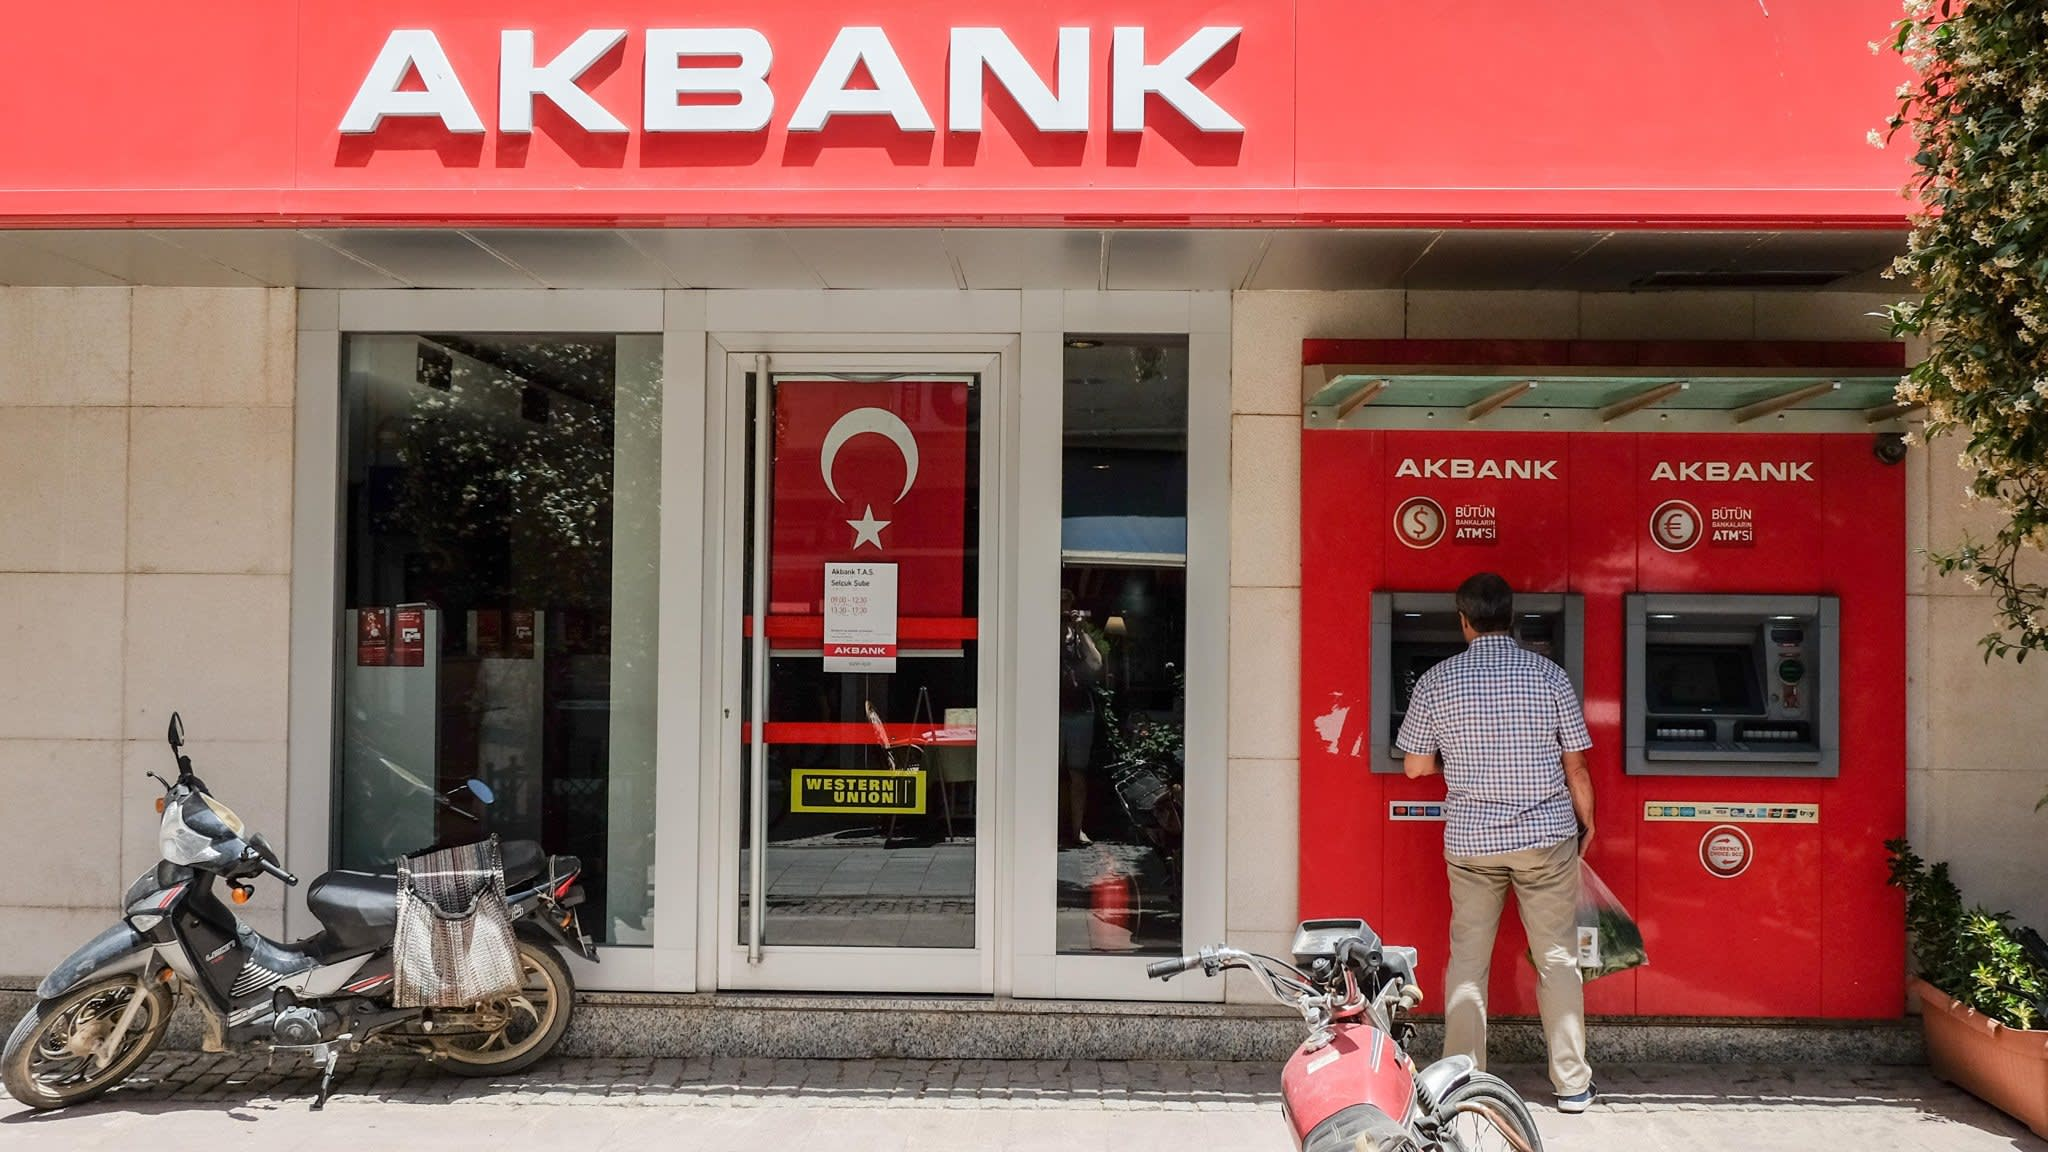 Turkey's inflation rate soars to almost 25%